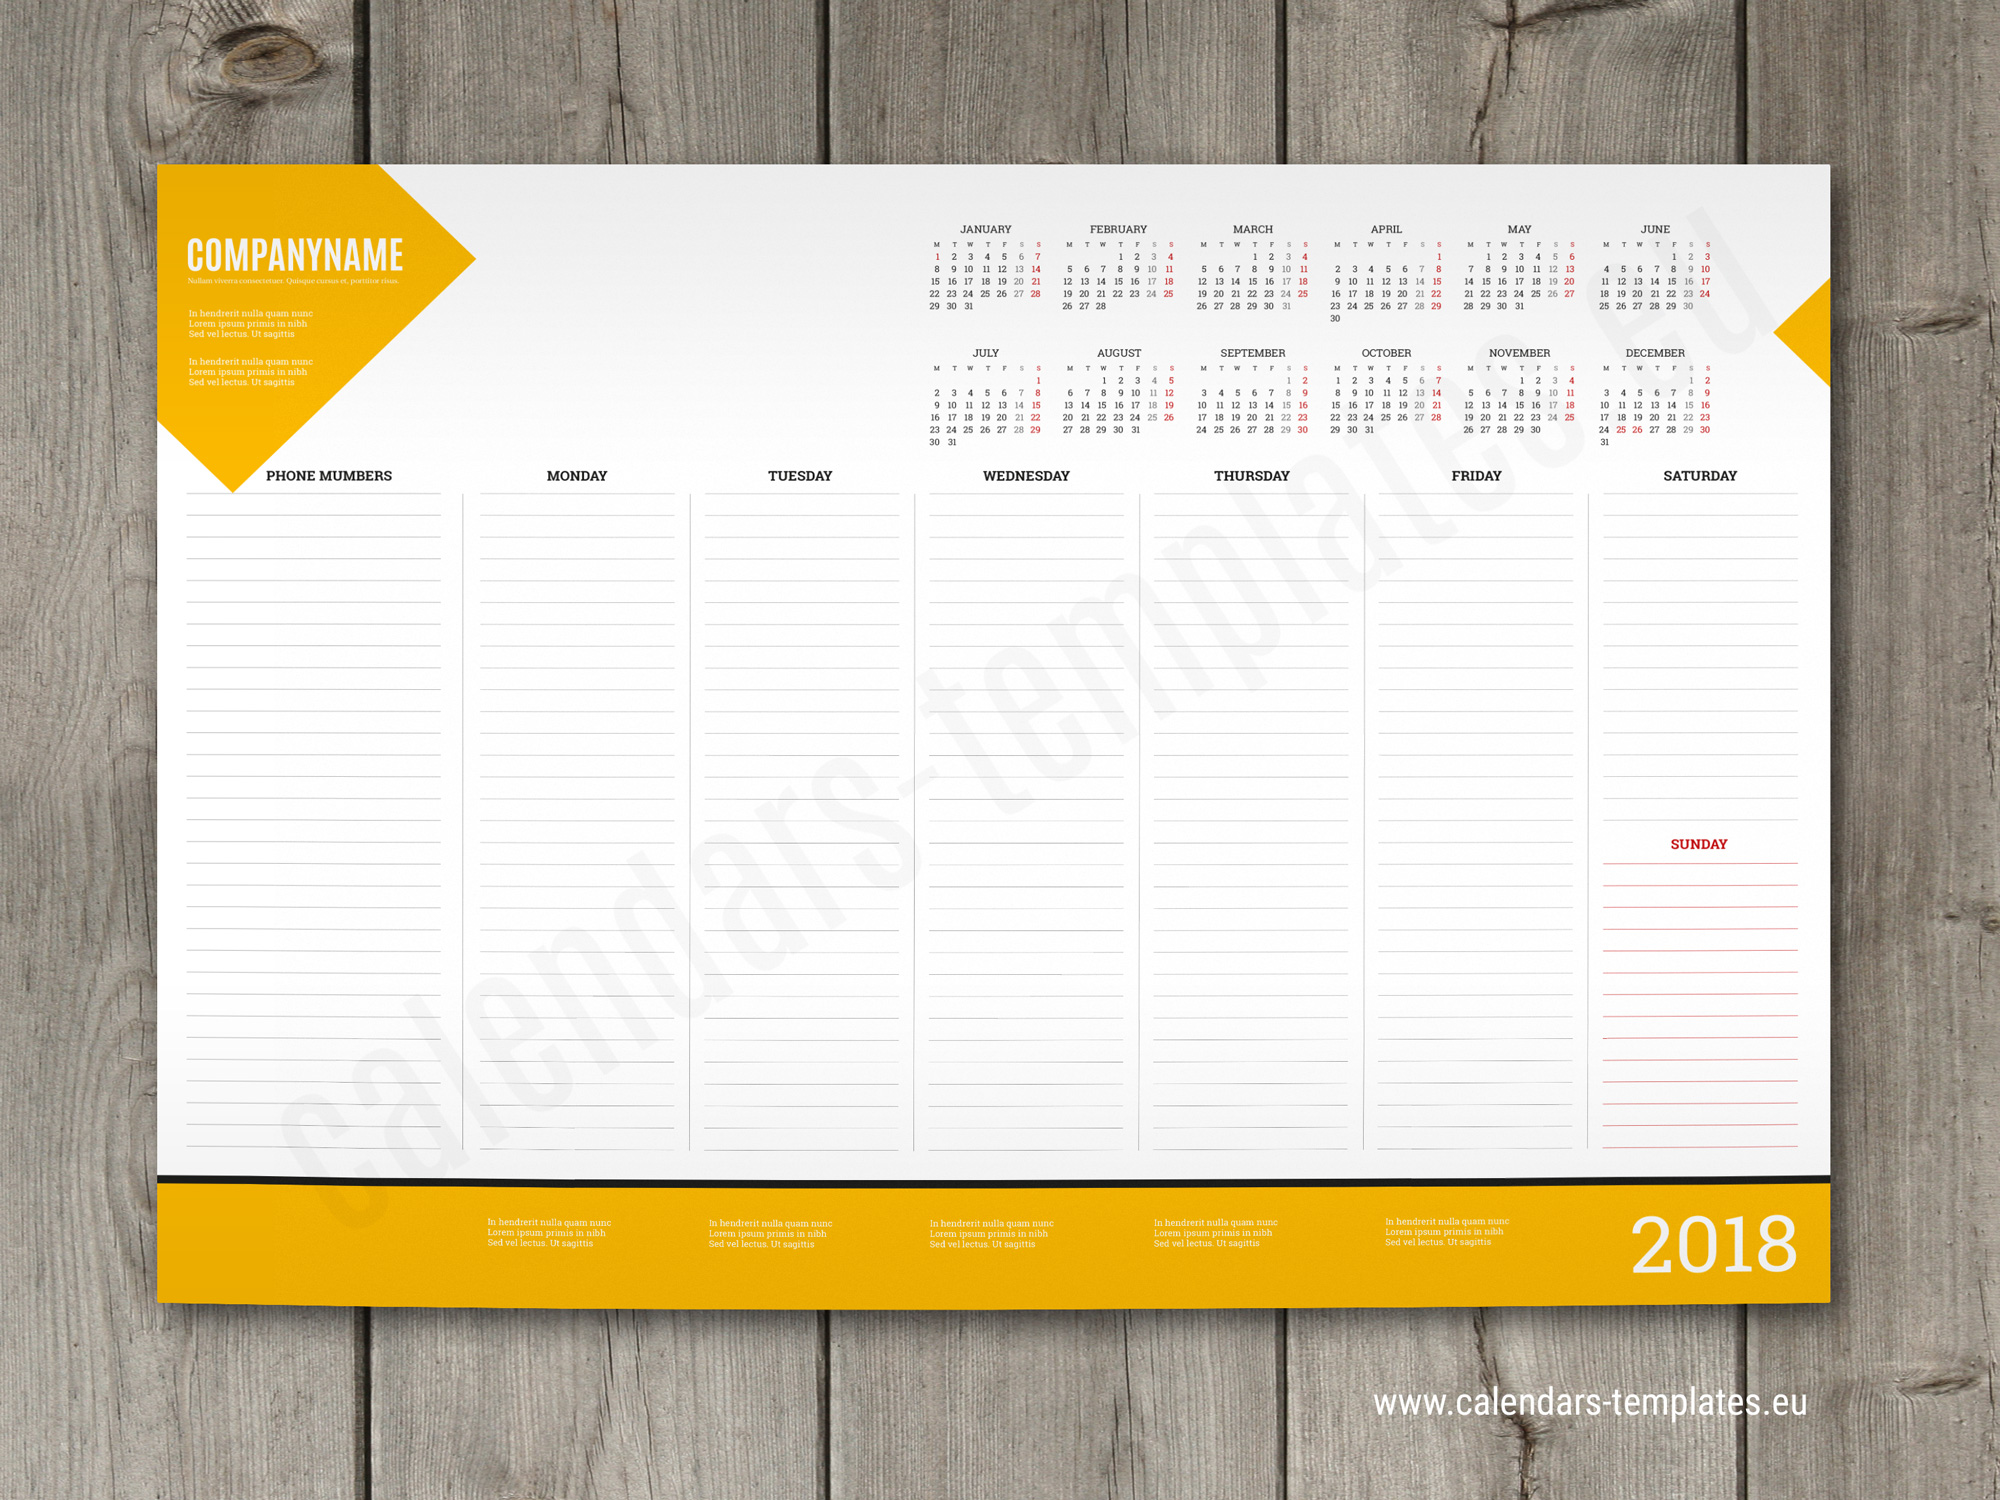 Weekly Calendar Desk Pad : Weekly desk pad planner template with yearly calendar